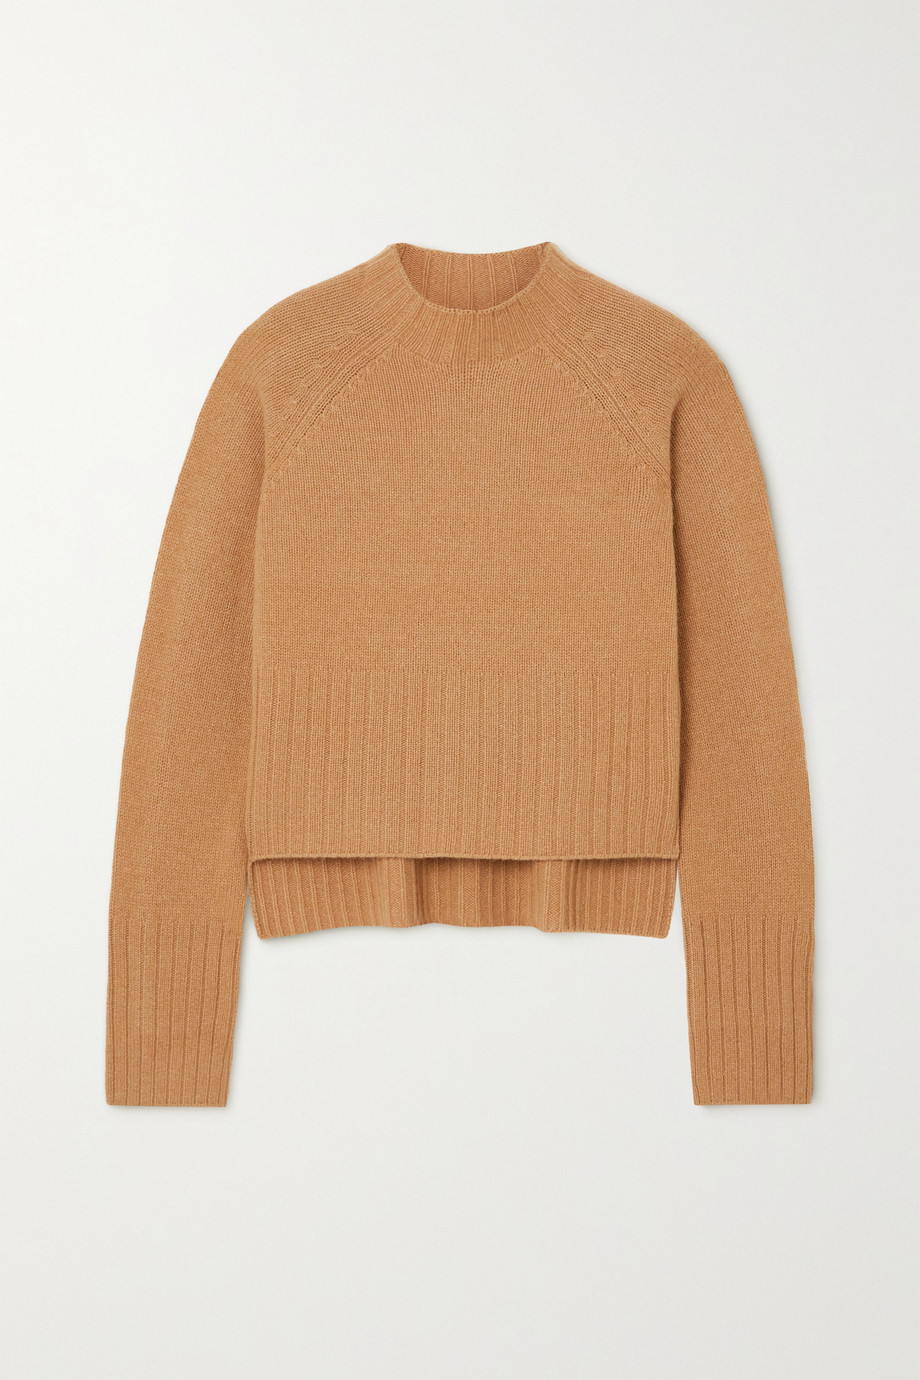 REJINA PYO + NET SUSTAIN Erin cashmere and wool-blend sweater